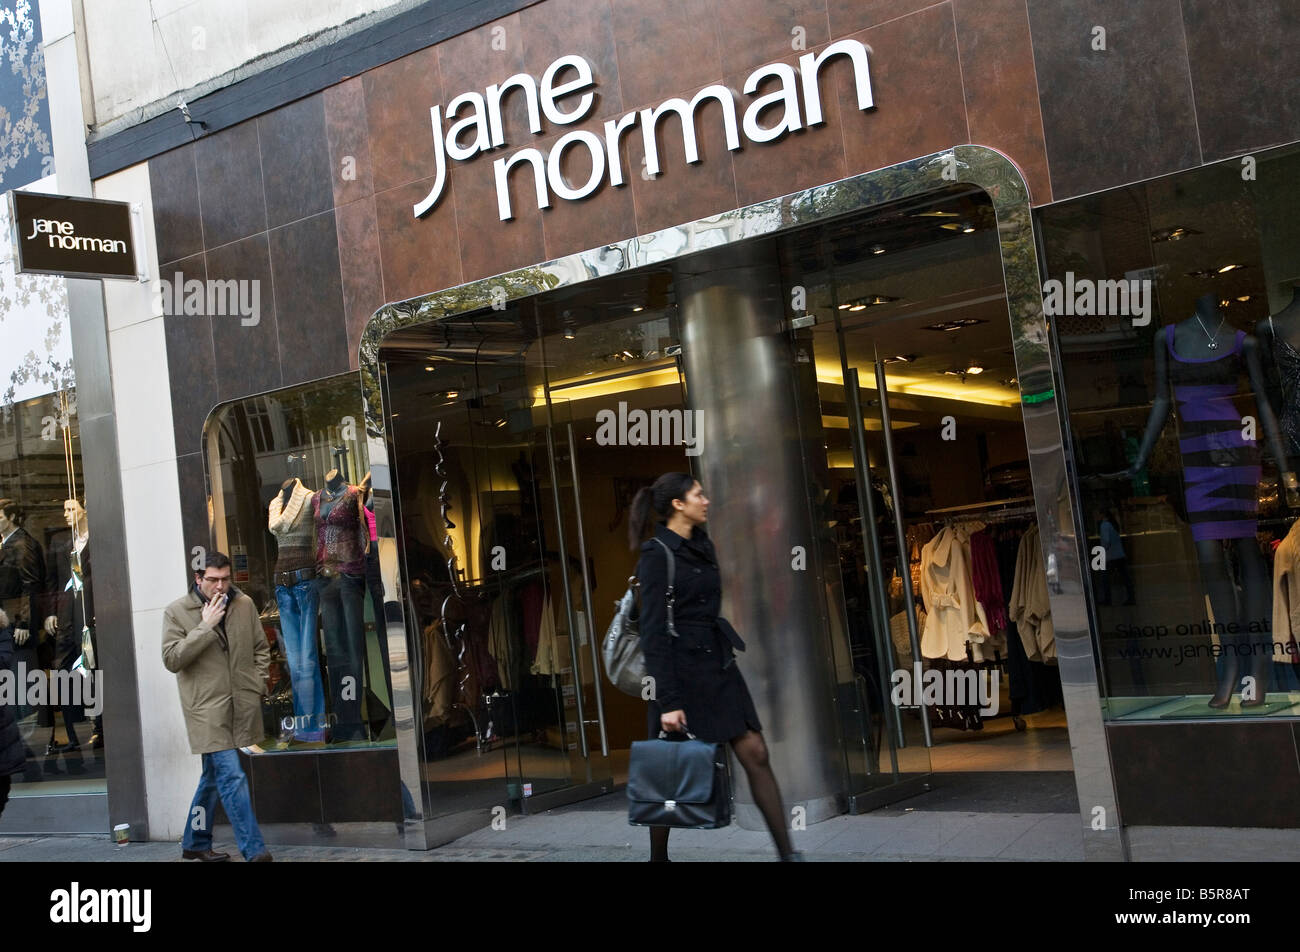 Jane Norman clothes shop on Oxford Street - Stock Image